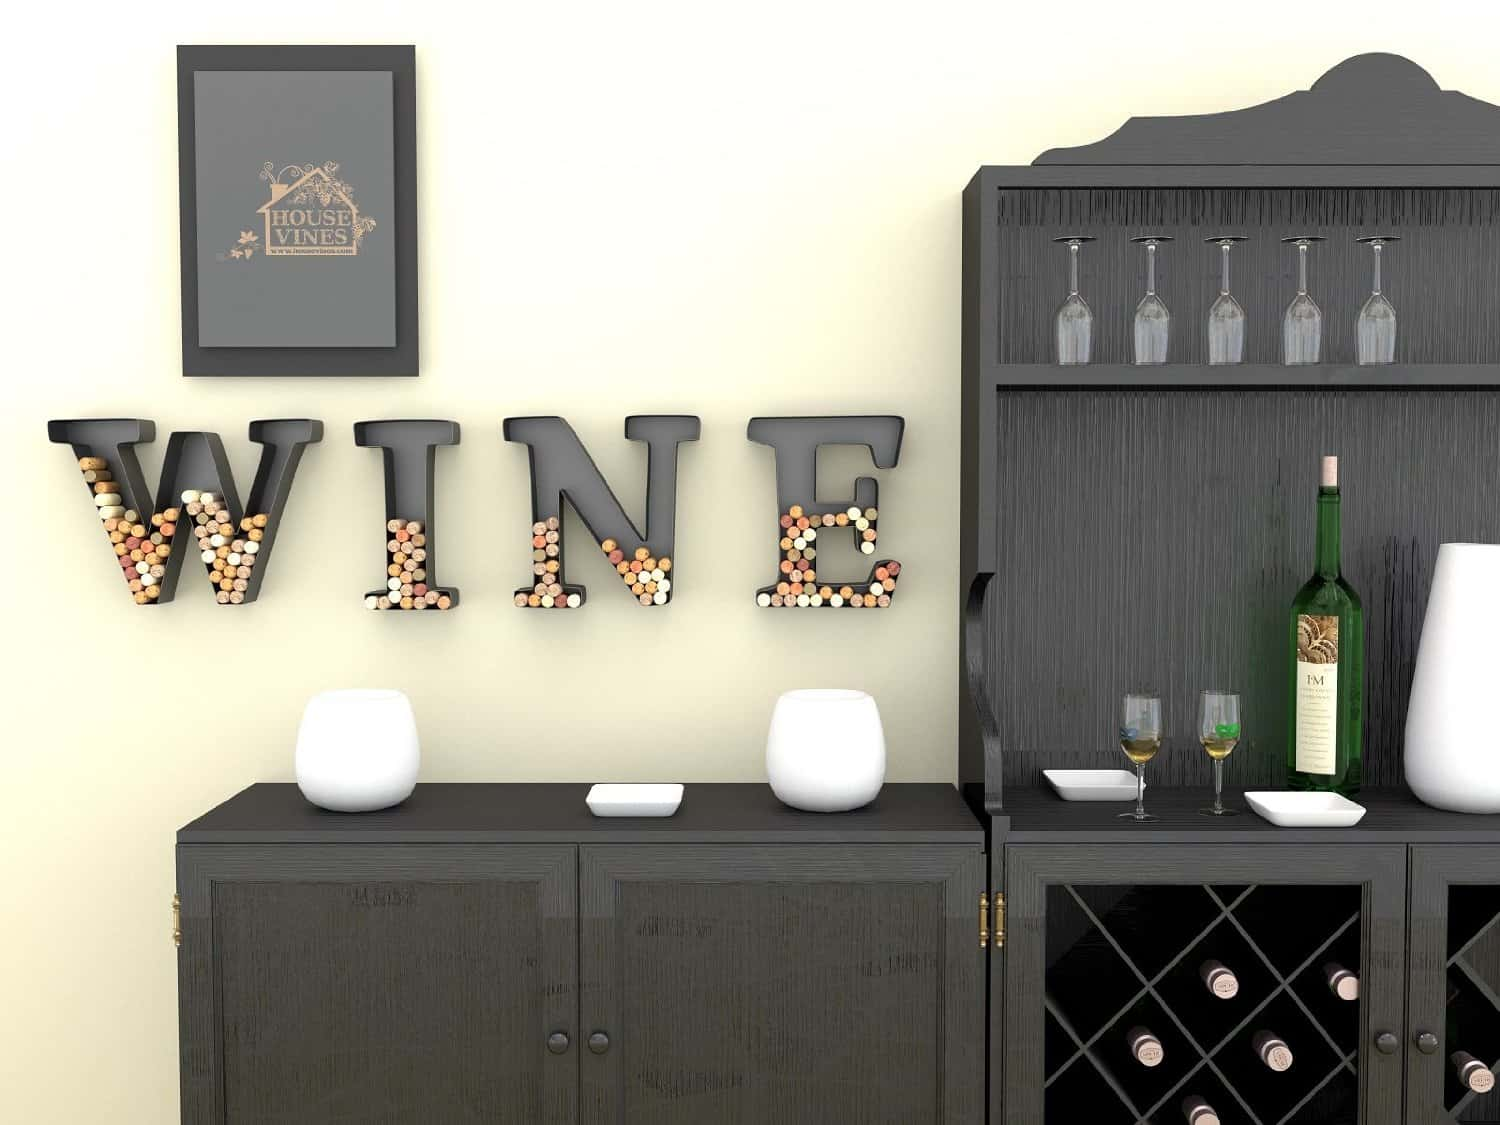 Wine Letter Cork Holder Art Wall Décor